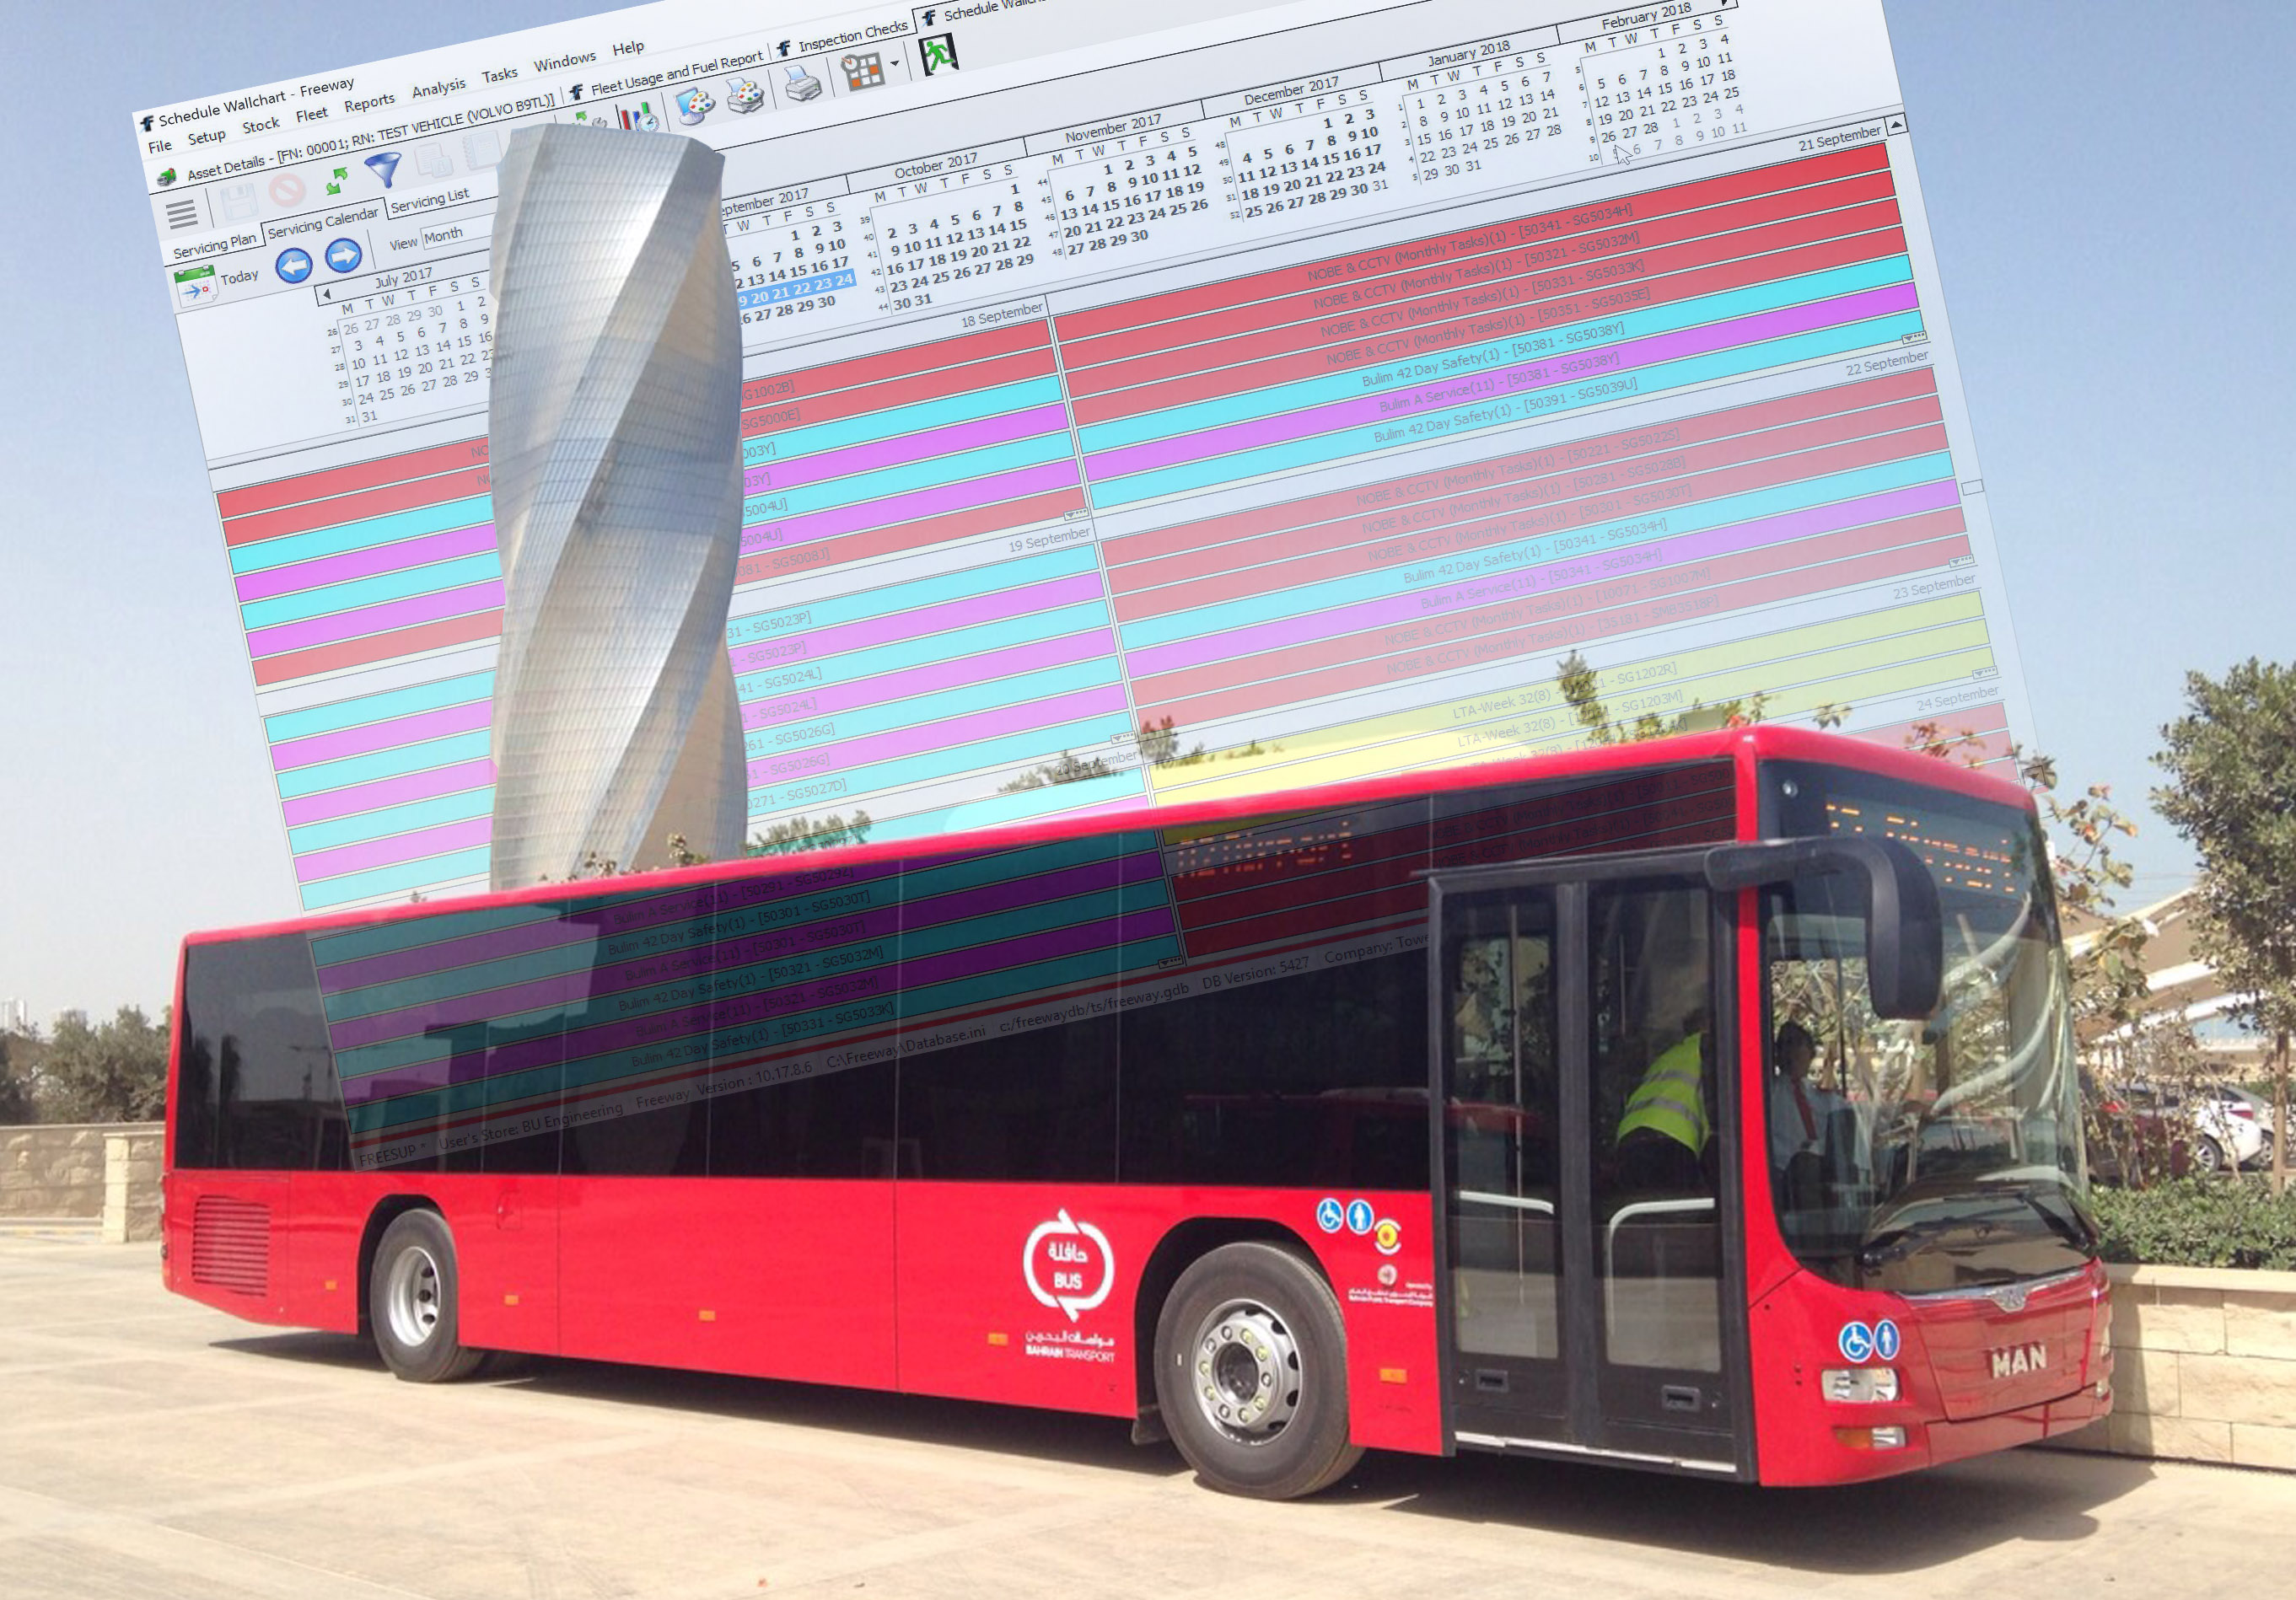 Bahrain Bus opts for Freeway Software to Manage Fleet